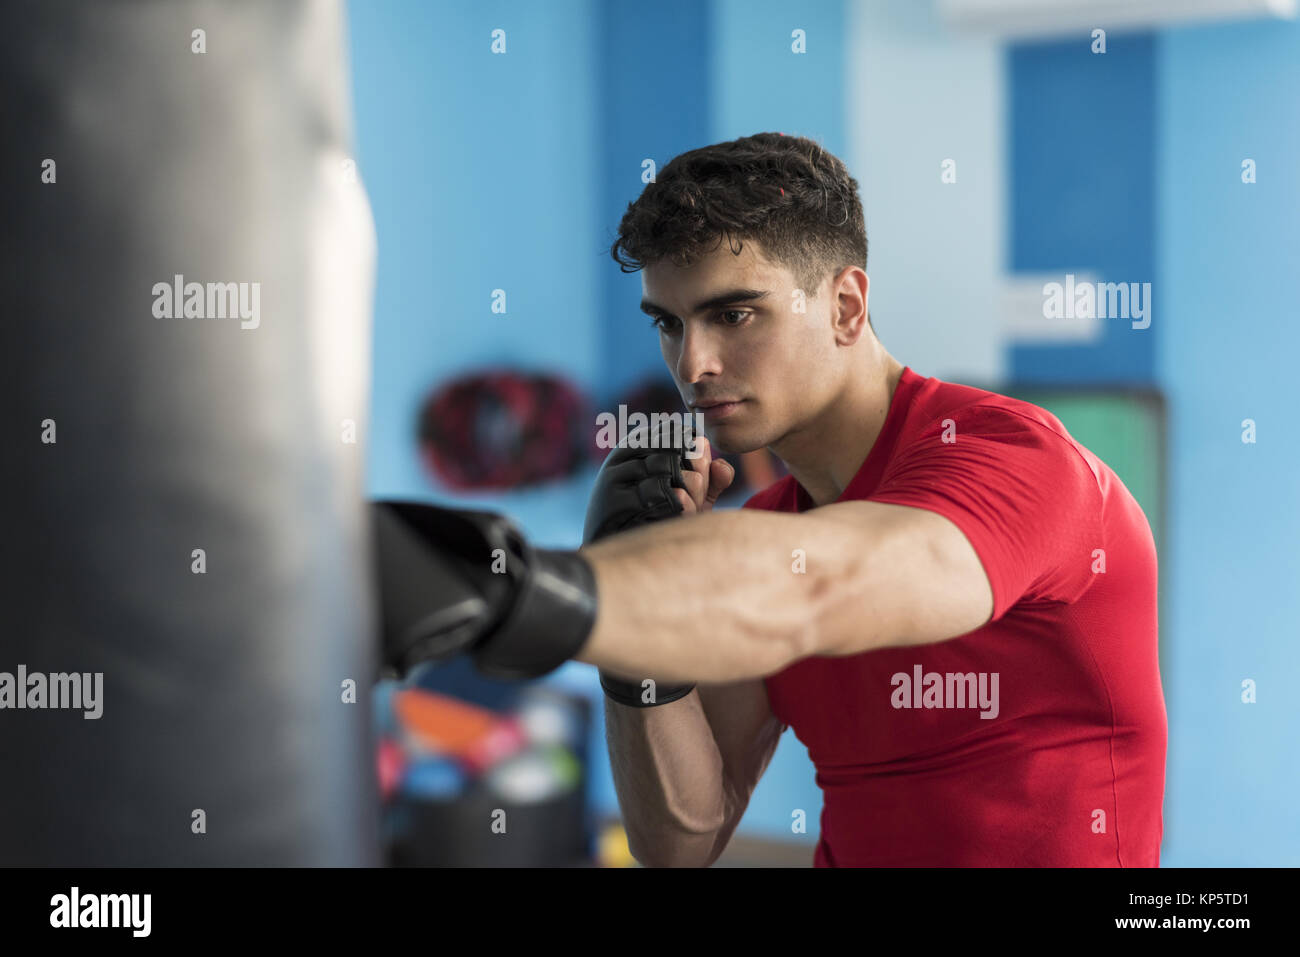 Boxer in gym training with punching bag - Stock Image